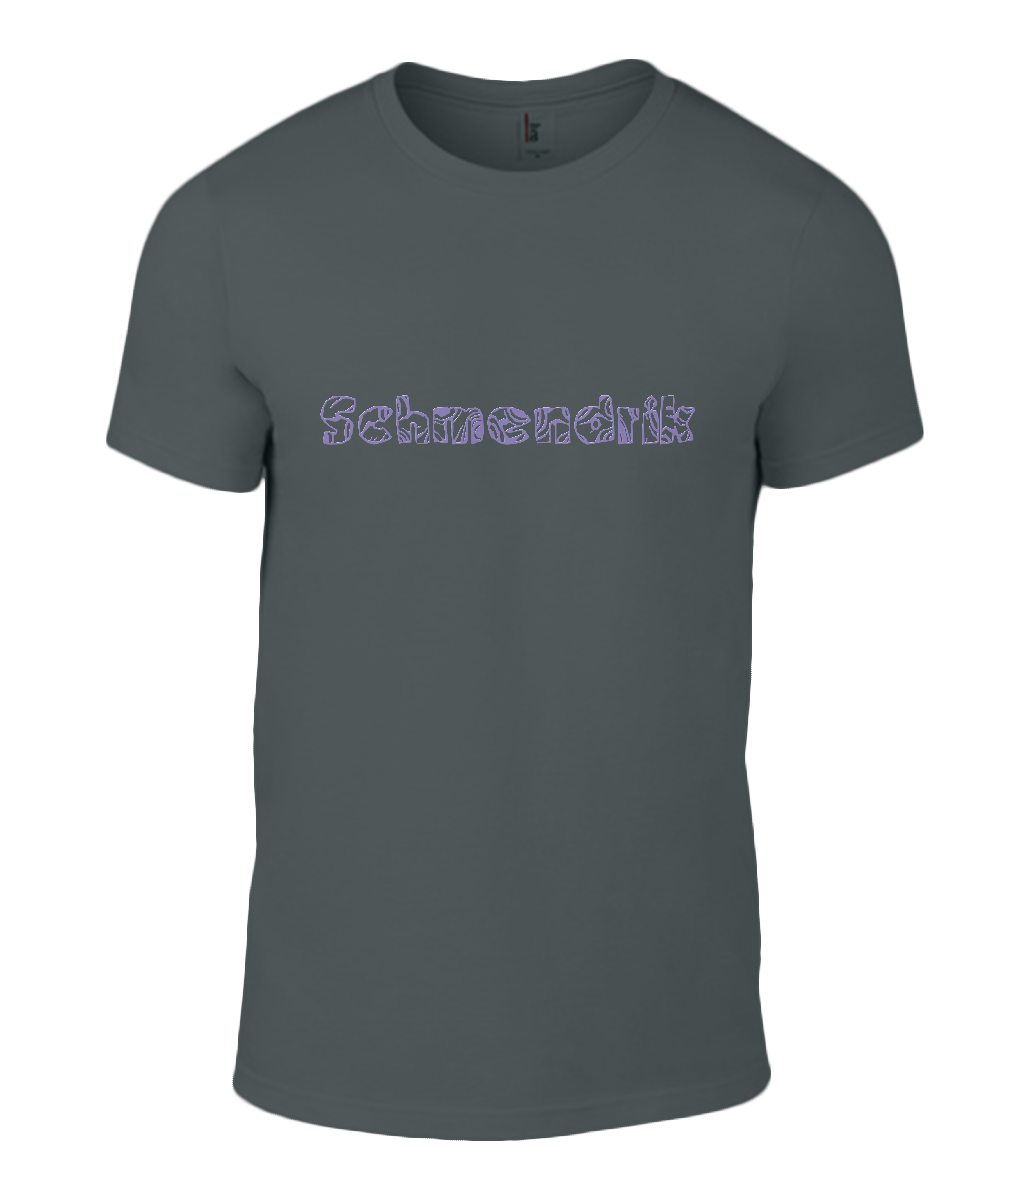 Round Neck T-Shirt - Schmendrick - Lokshen Pudding UK - Black